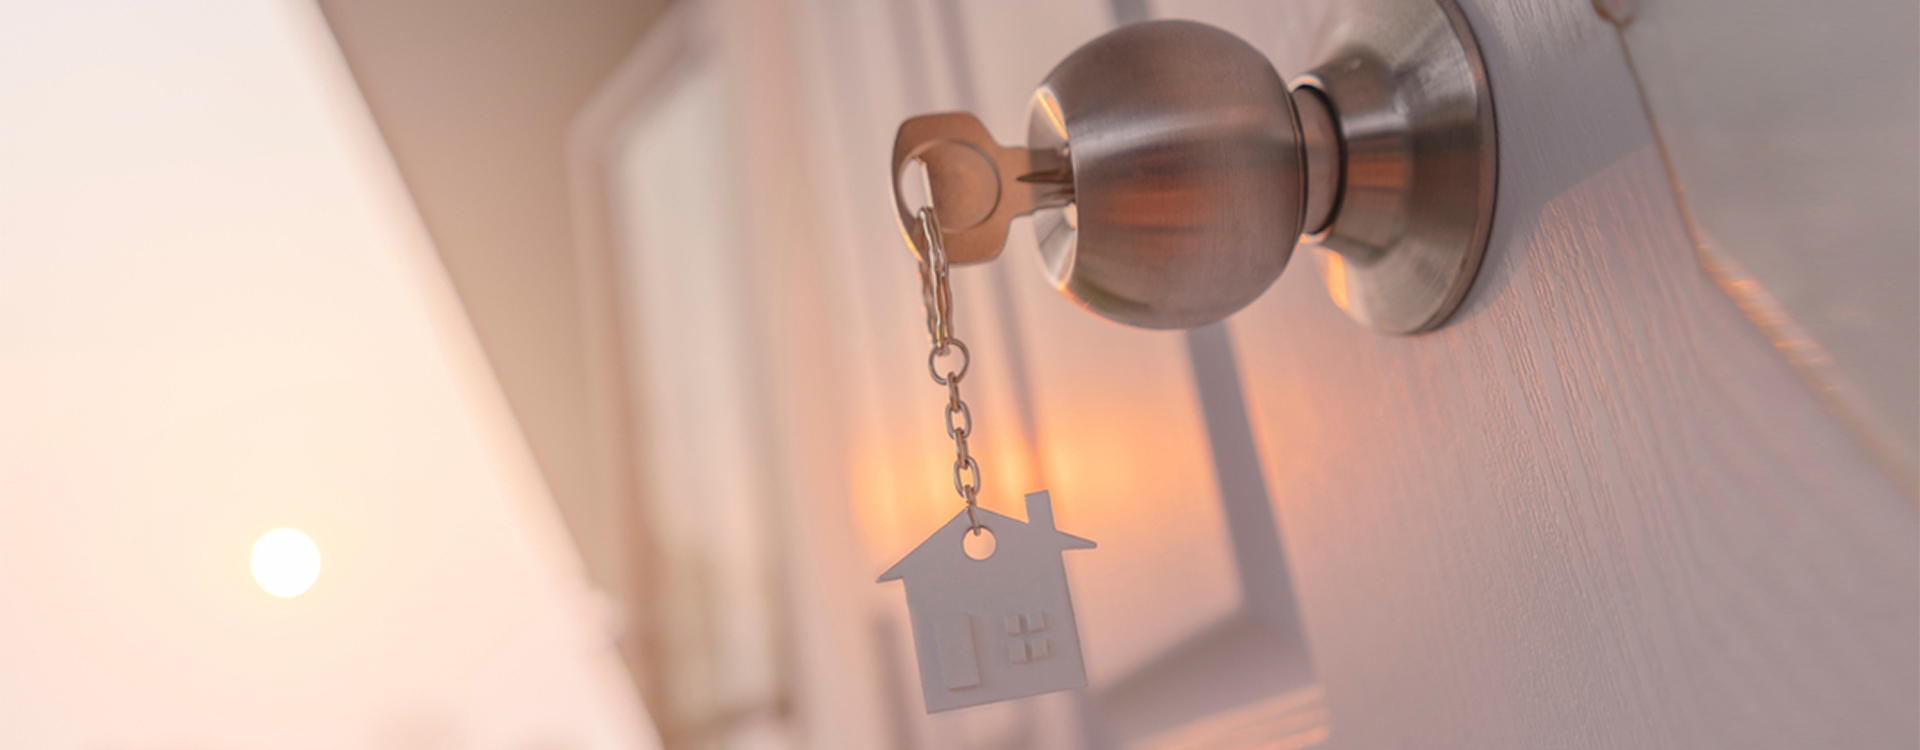 How to get into your own flat and save on rentals?